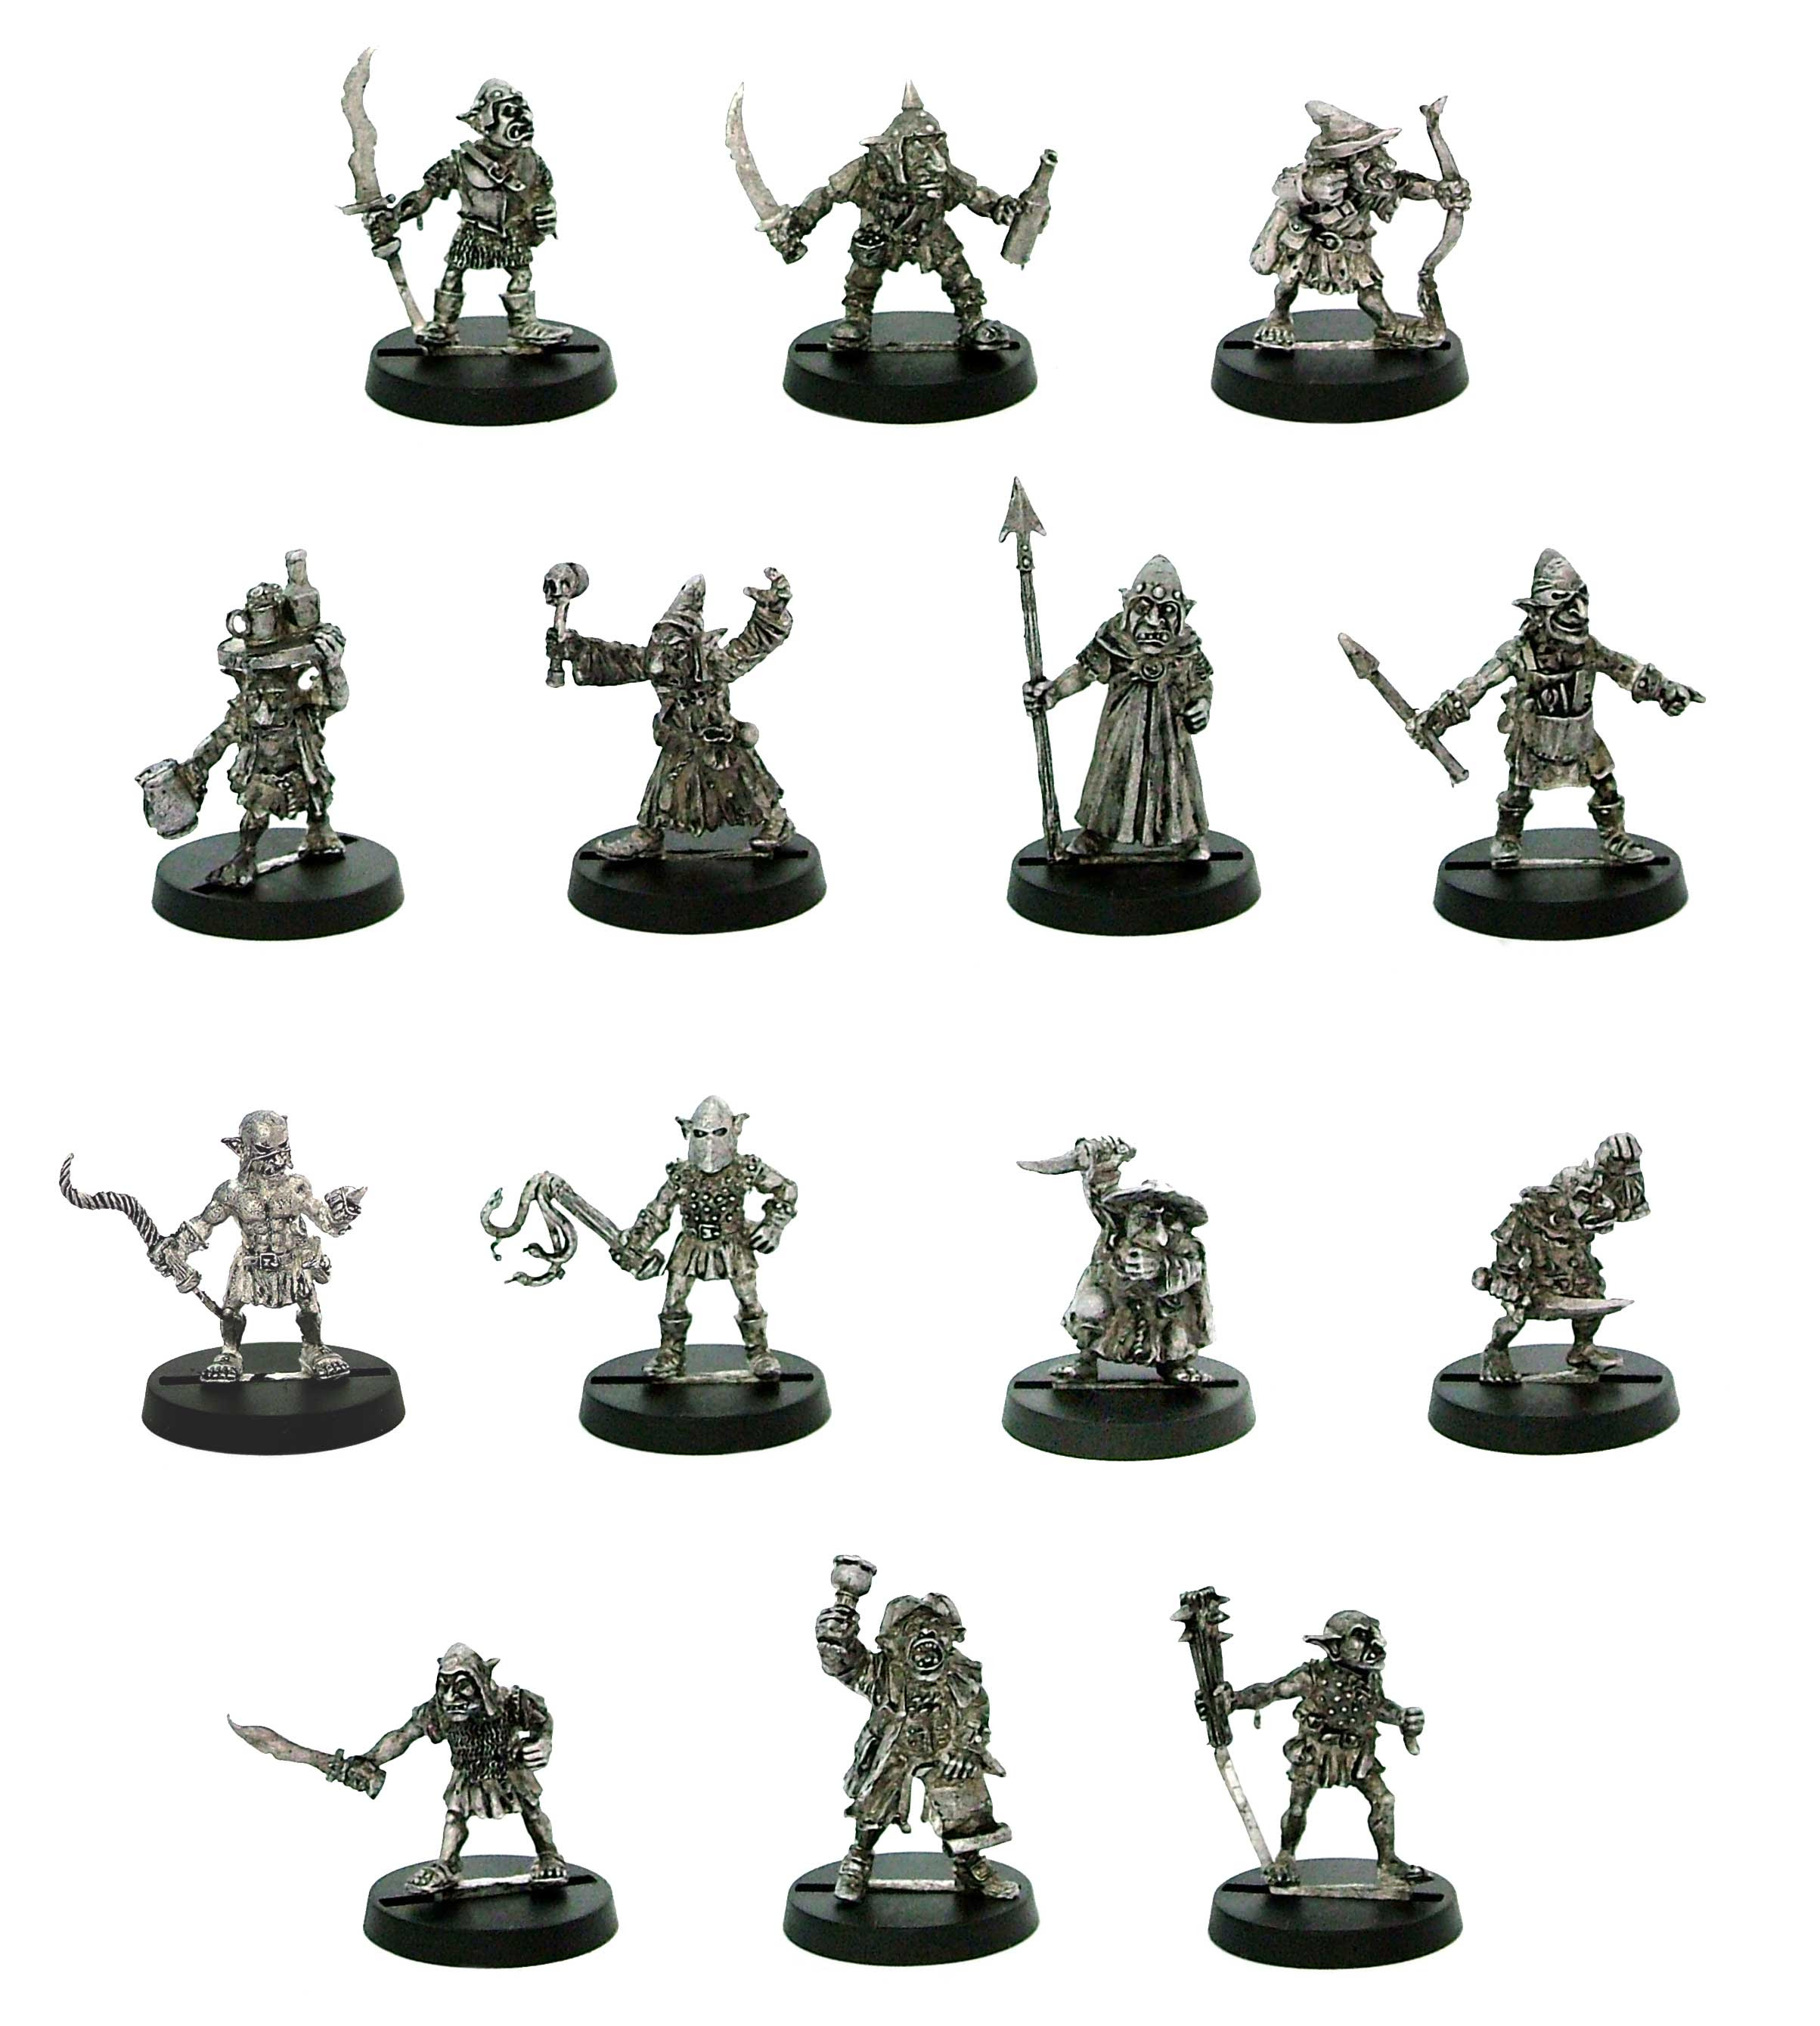 http://www.midlamminiatures.co.uk/user/products/large/All-GLM-Goblins.jpg